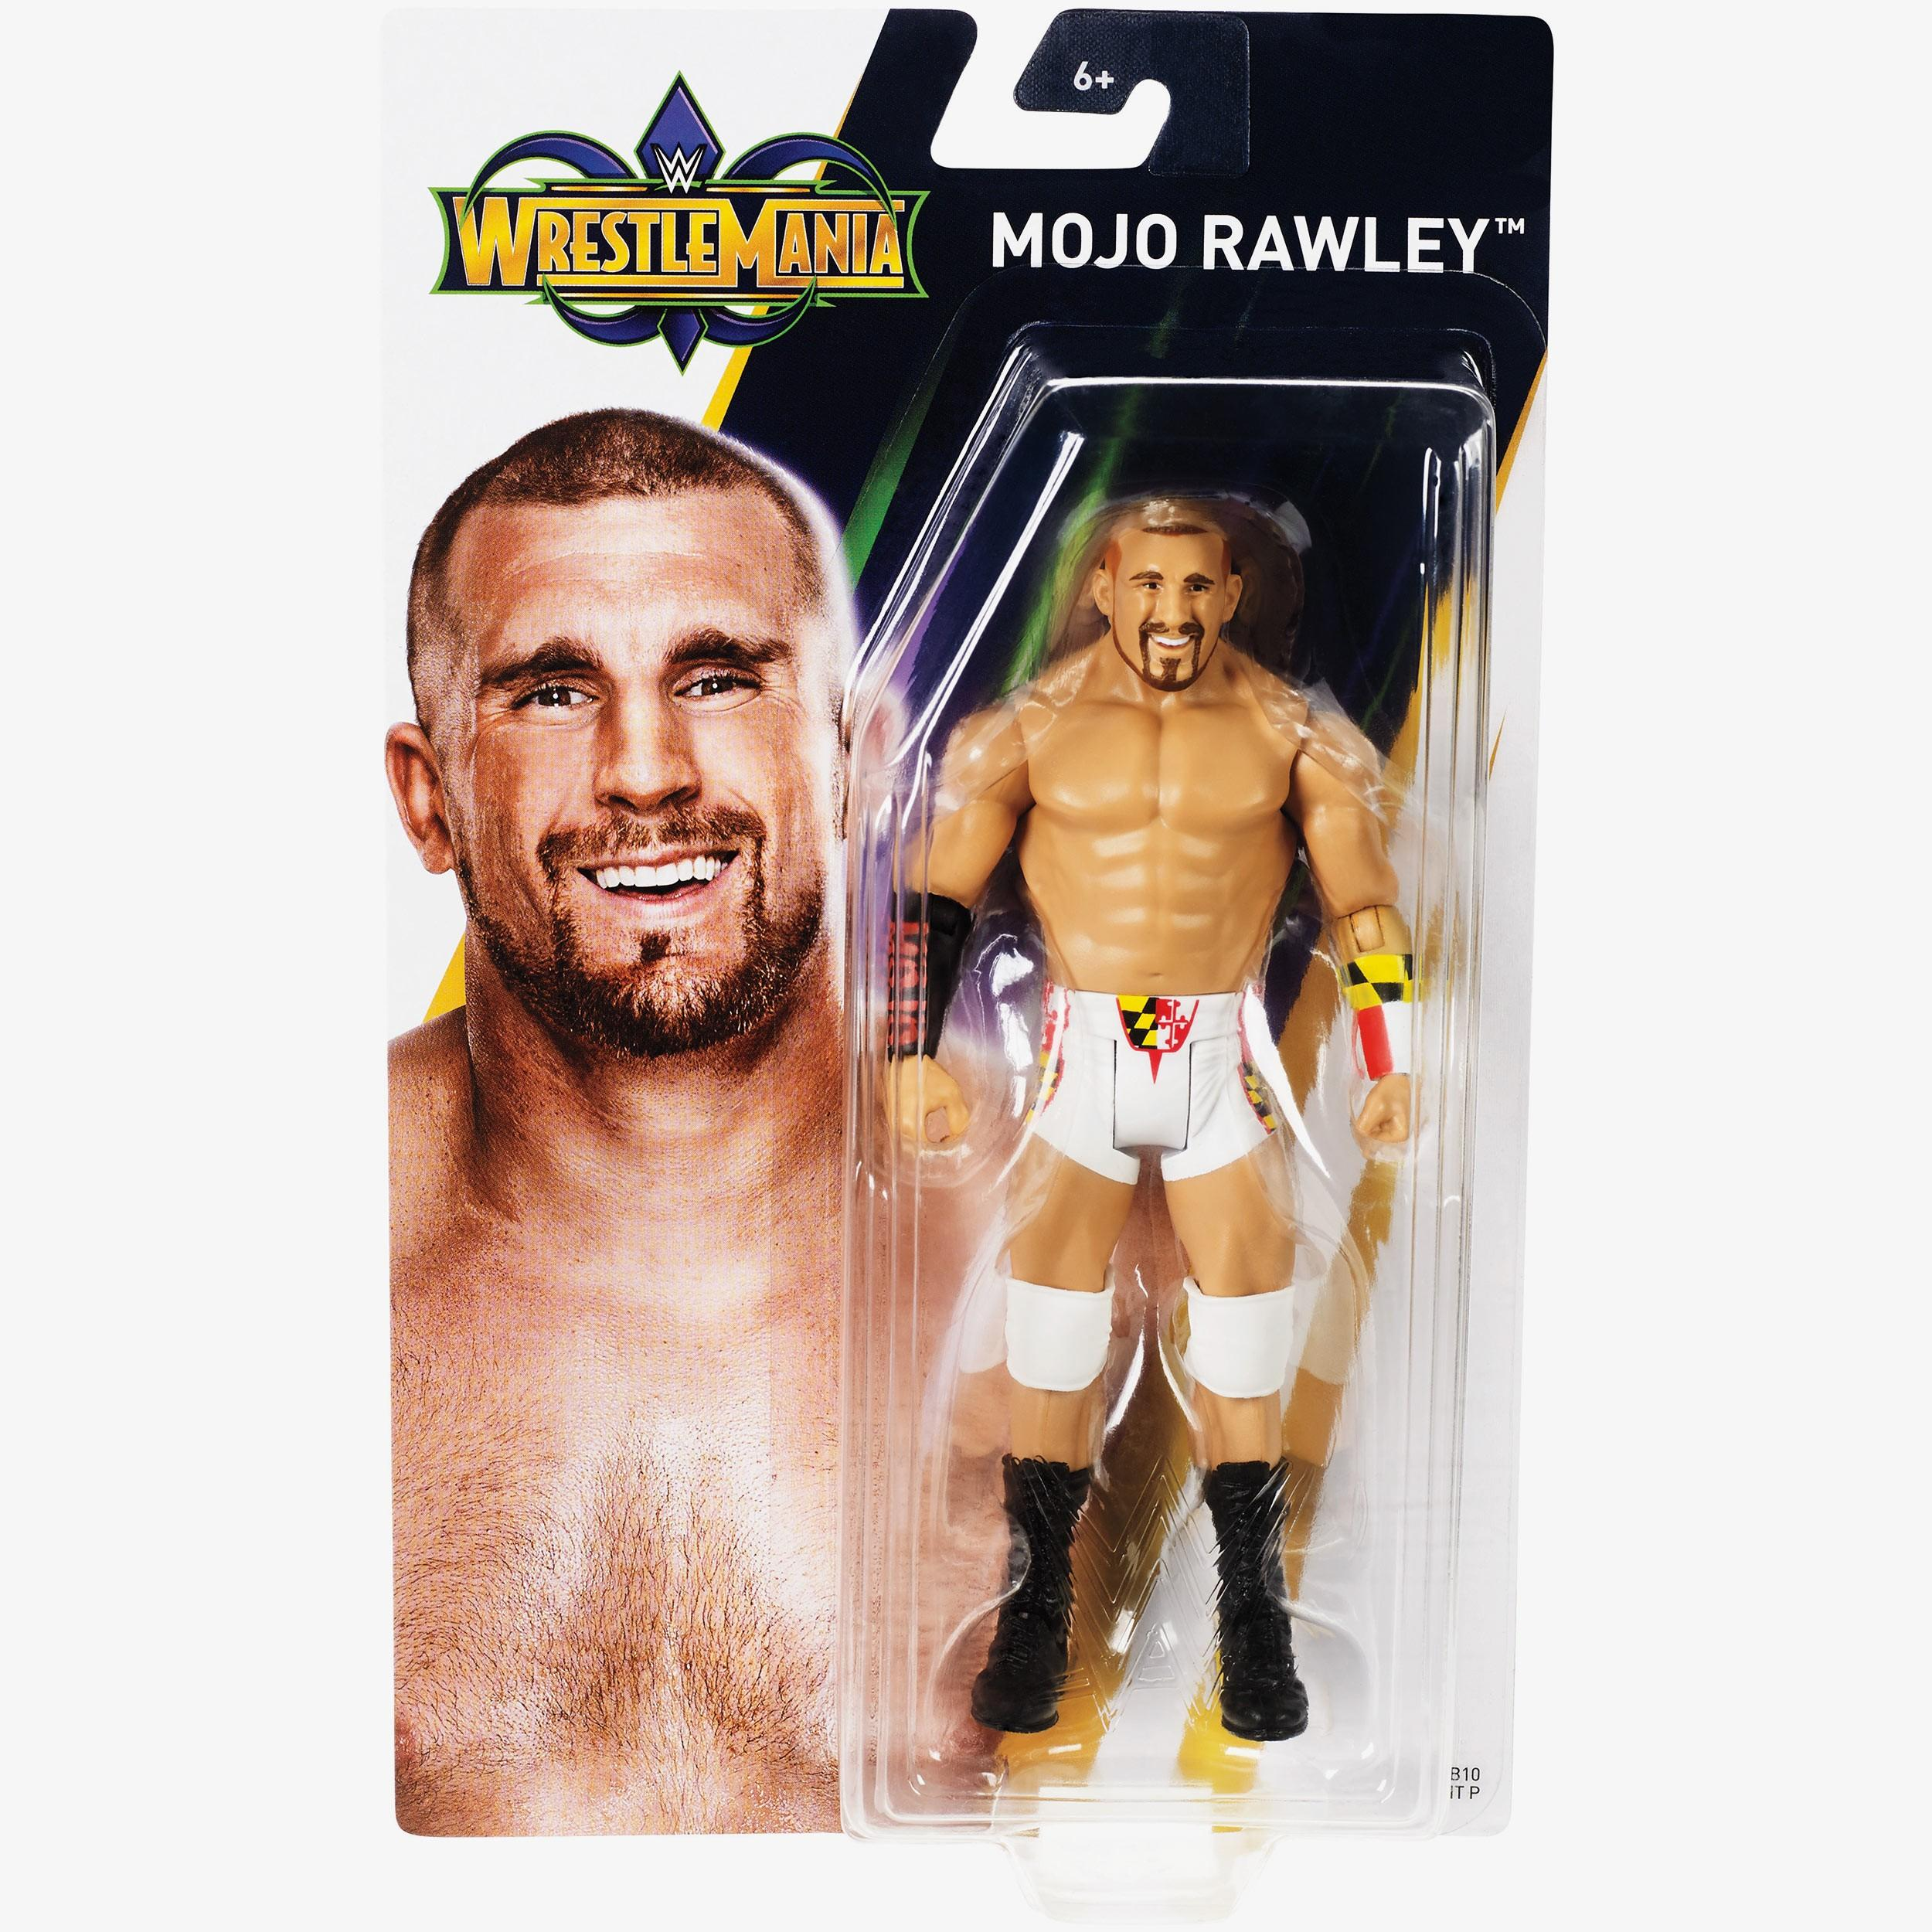 WWE Wrestlemania Mojo Rawley2